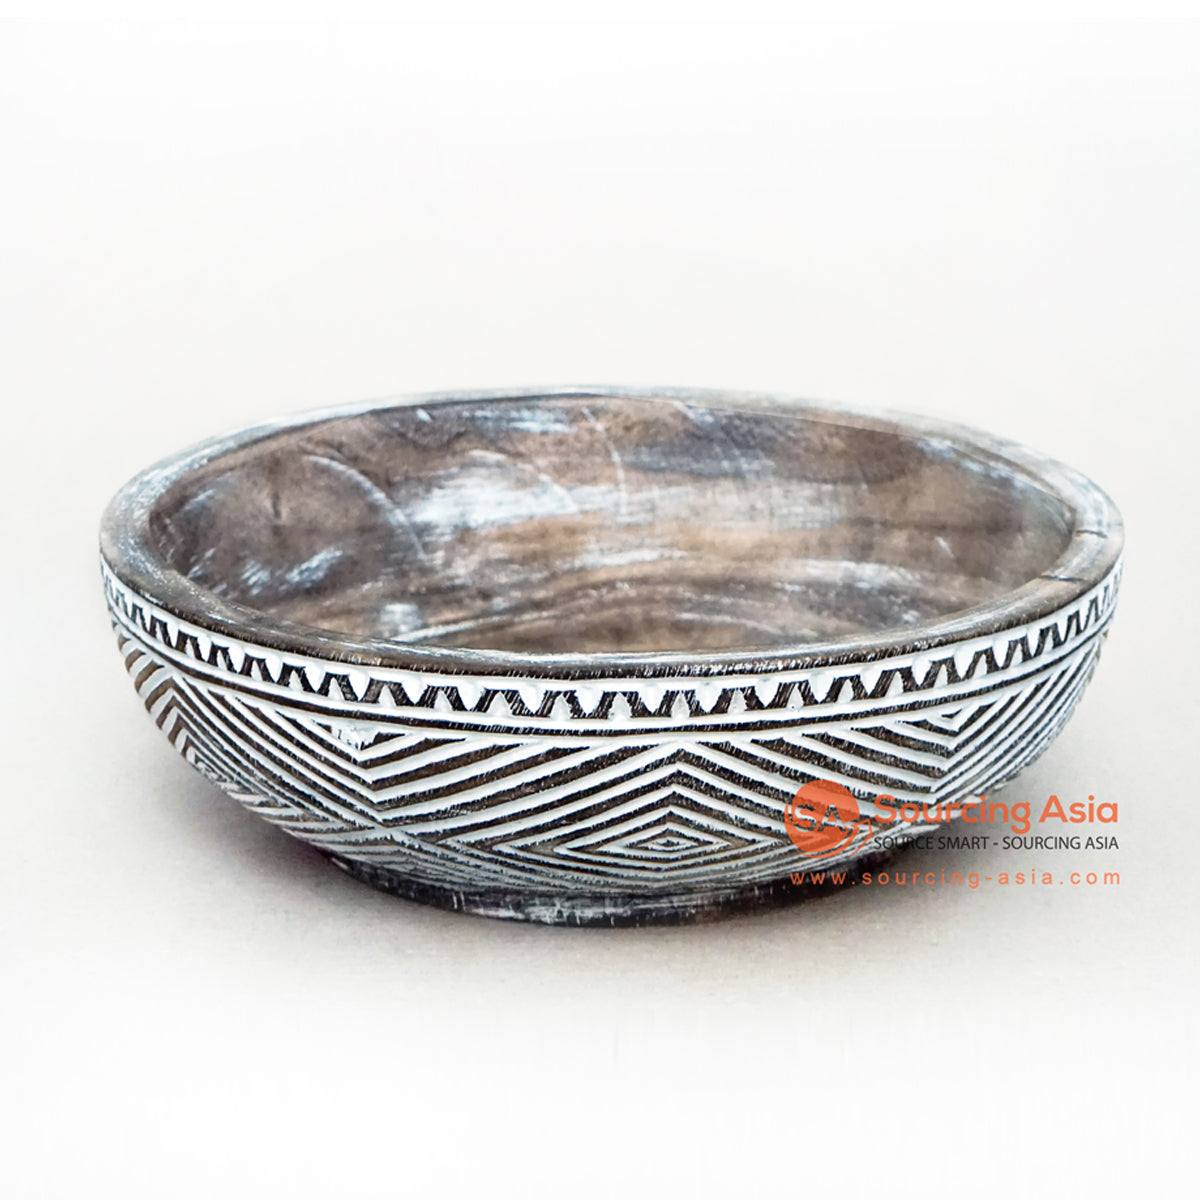 KHLV039-1 WOODEN ETHNIC TRIBAL CARVED BOWL